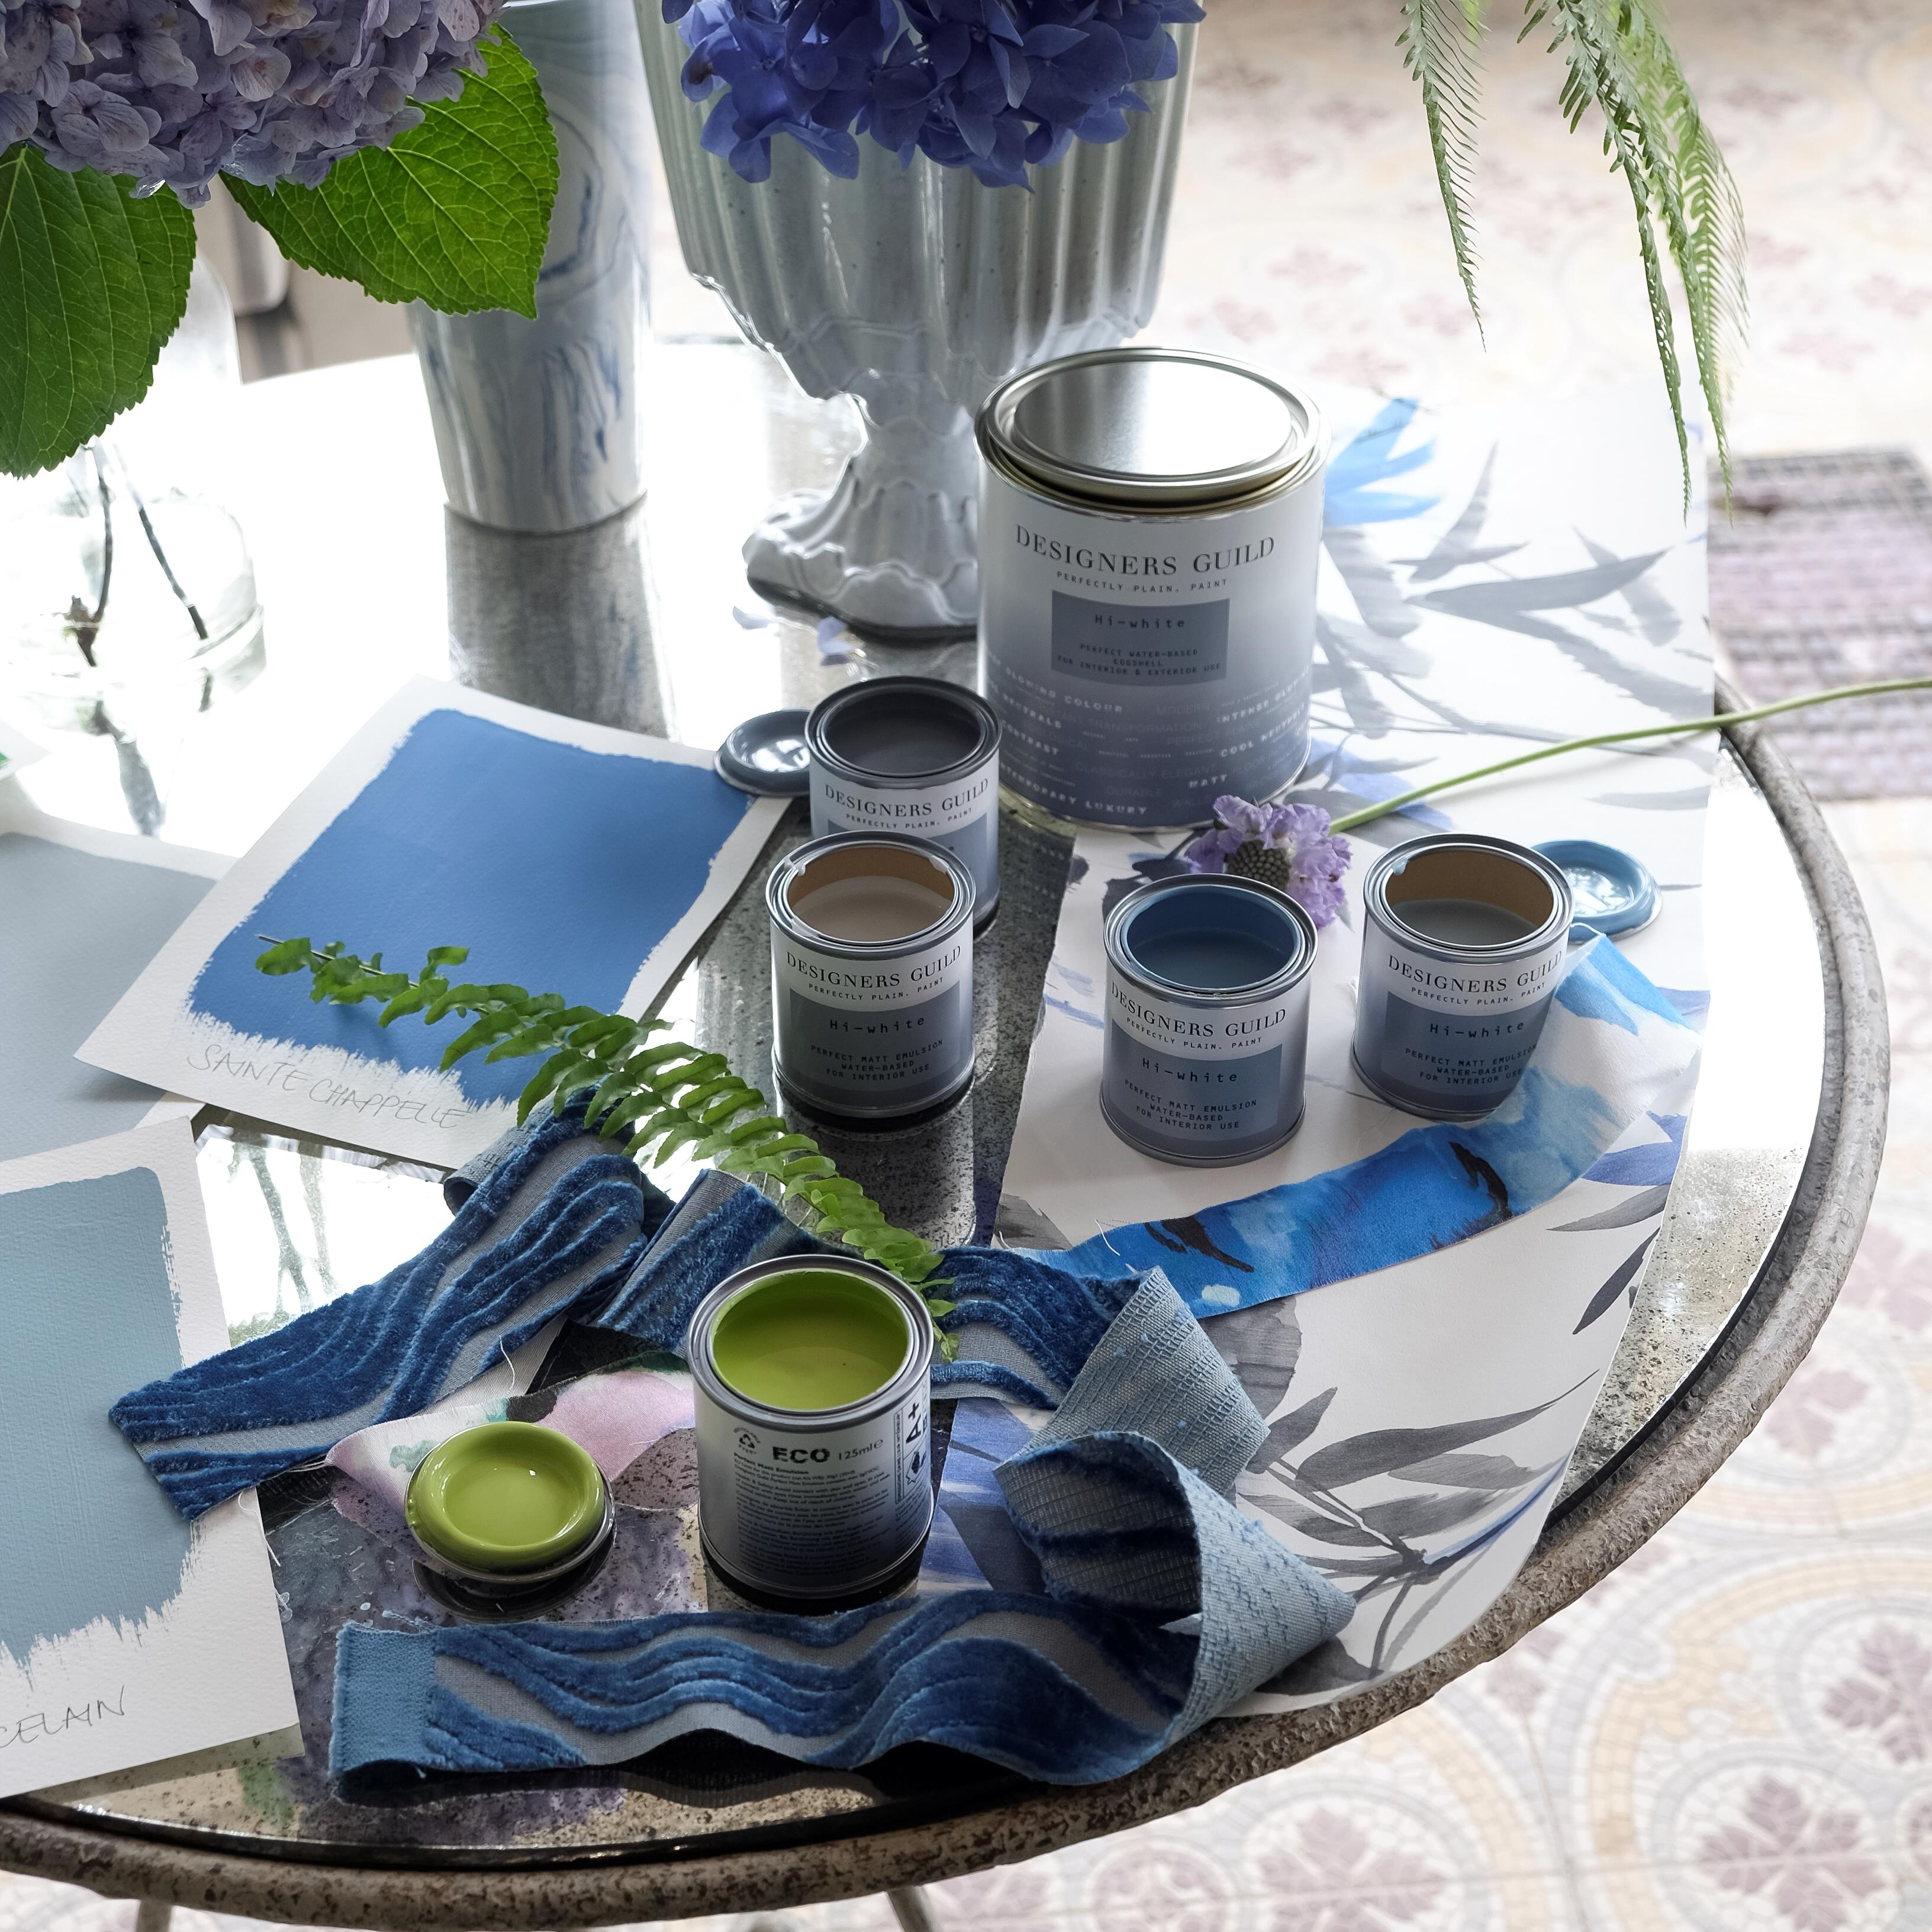 Designers Guild Eco-friendly väggfärg